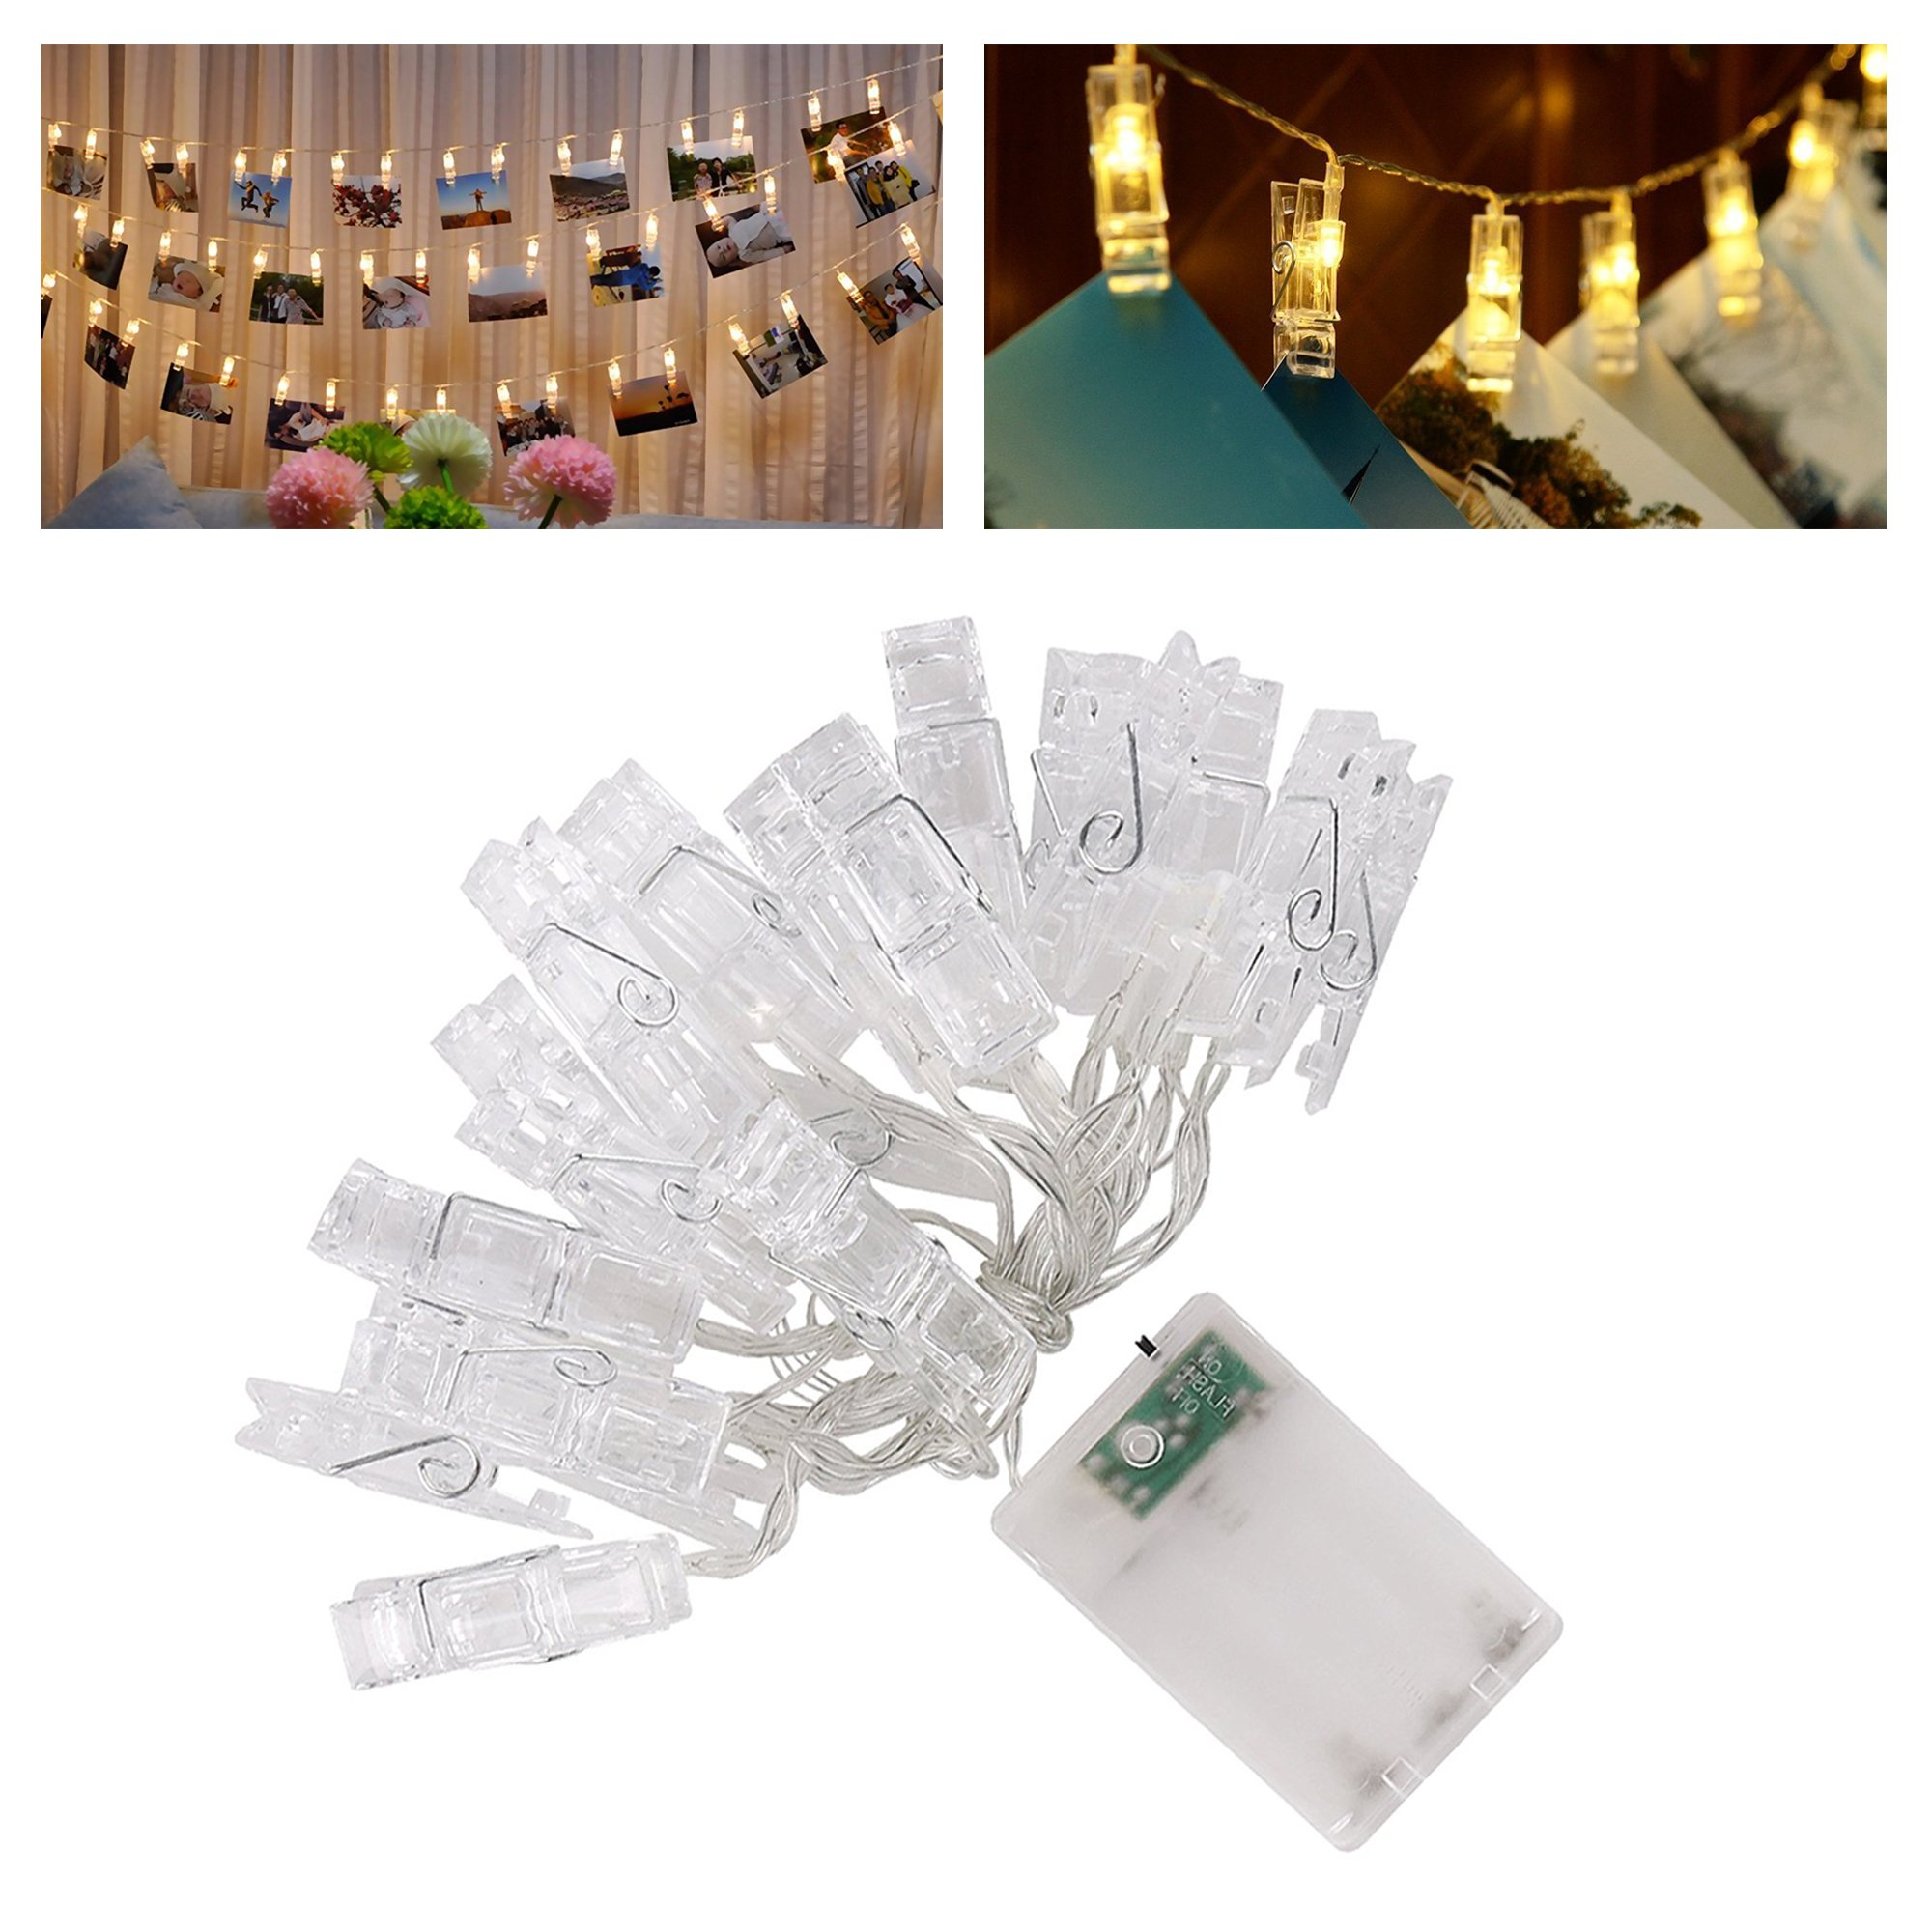 5m Hanging Picture Decoration Fairy Lights 20 Photo Clips String Lights in Warm White for Birthday Parties & Home Décor by Glift(TM) (Image #4)